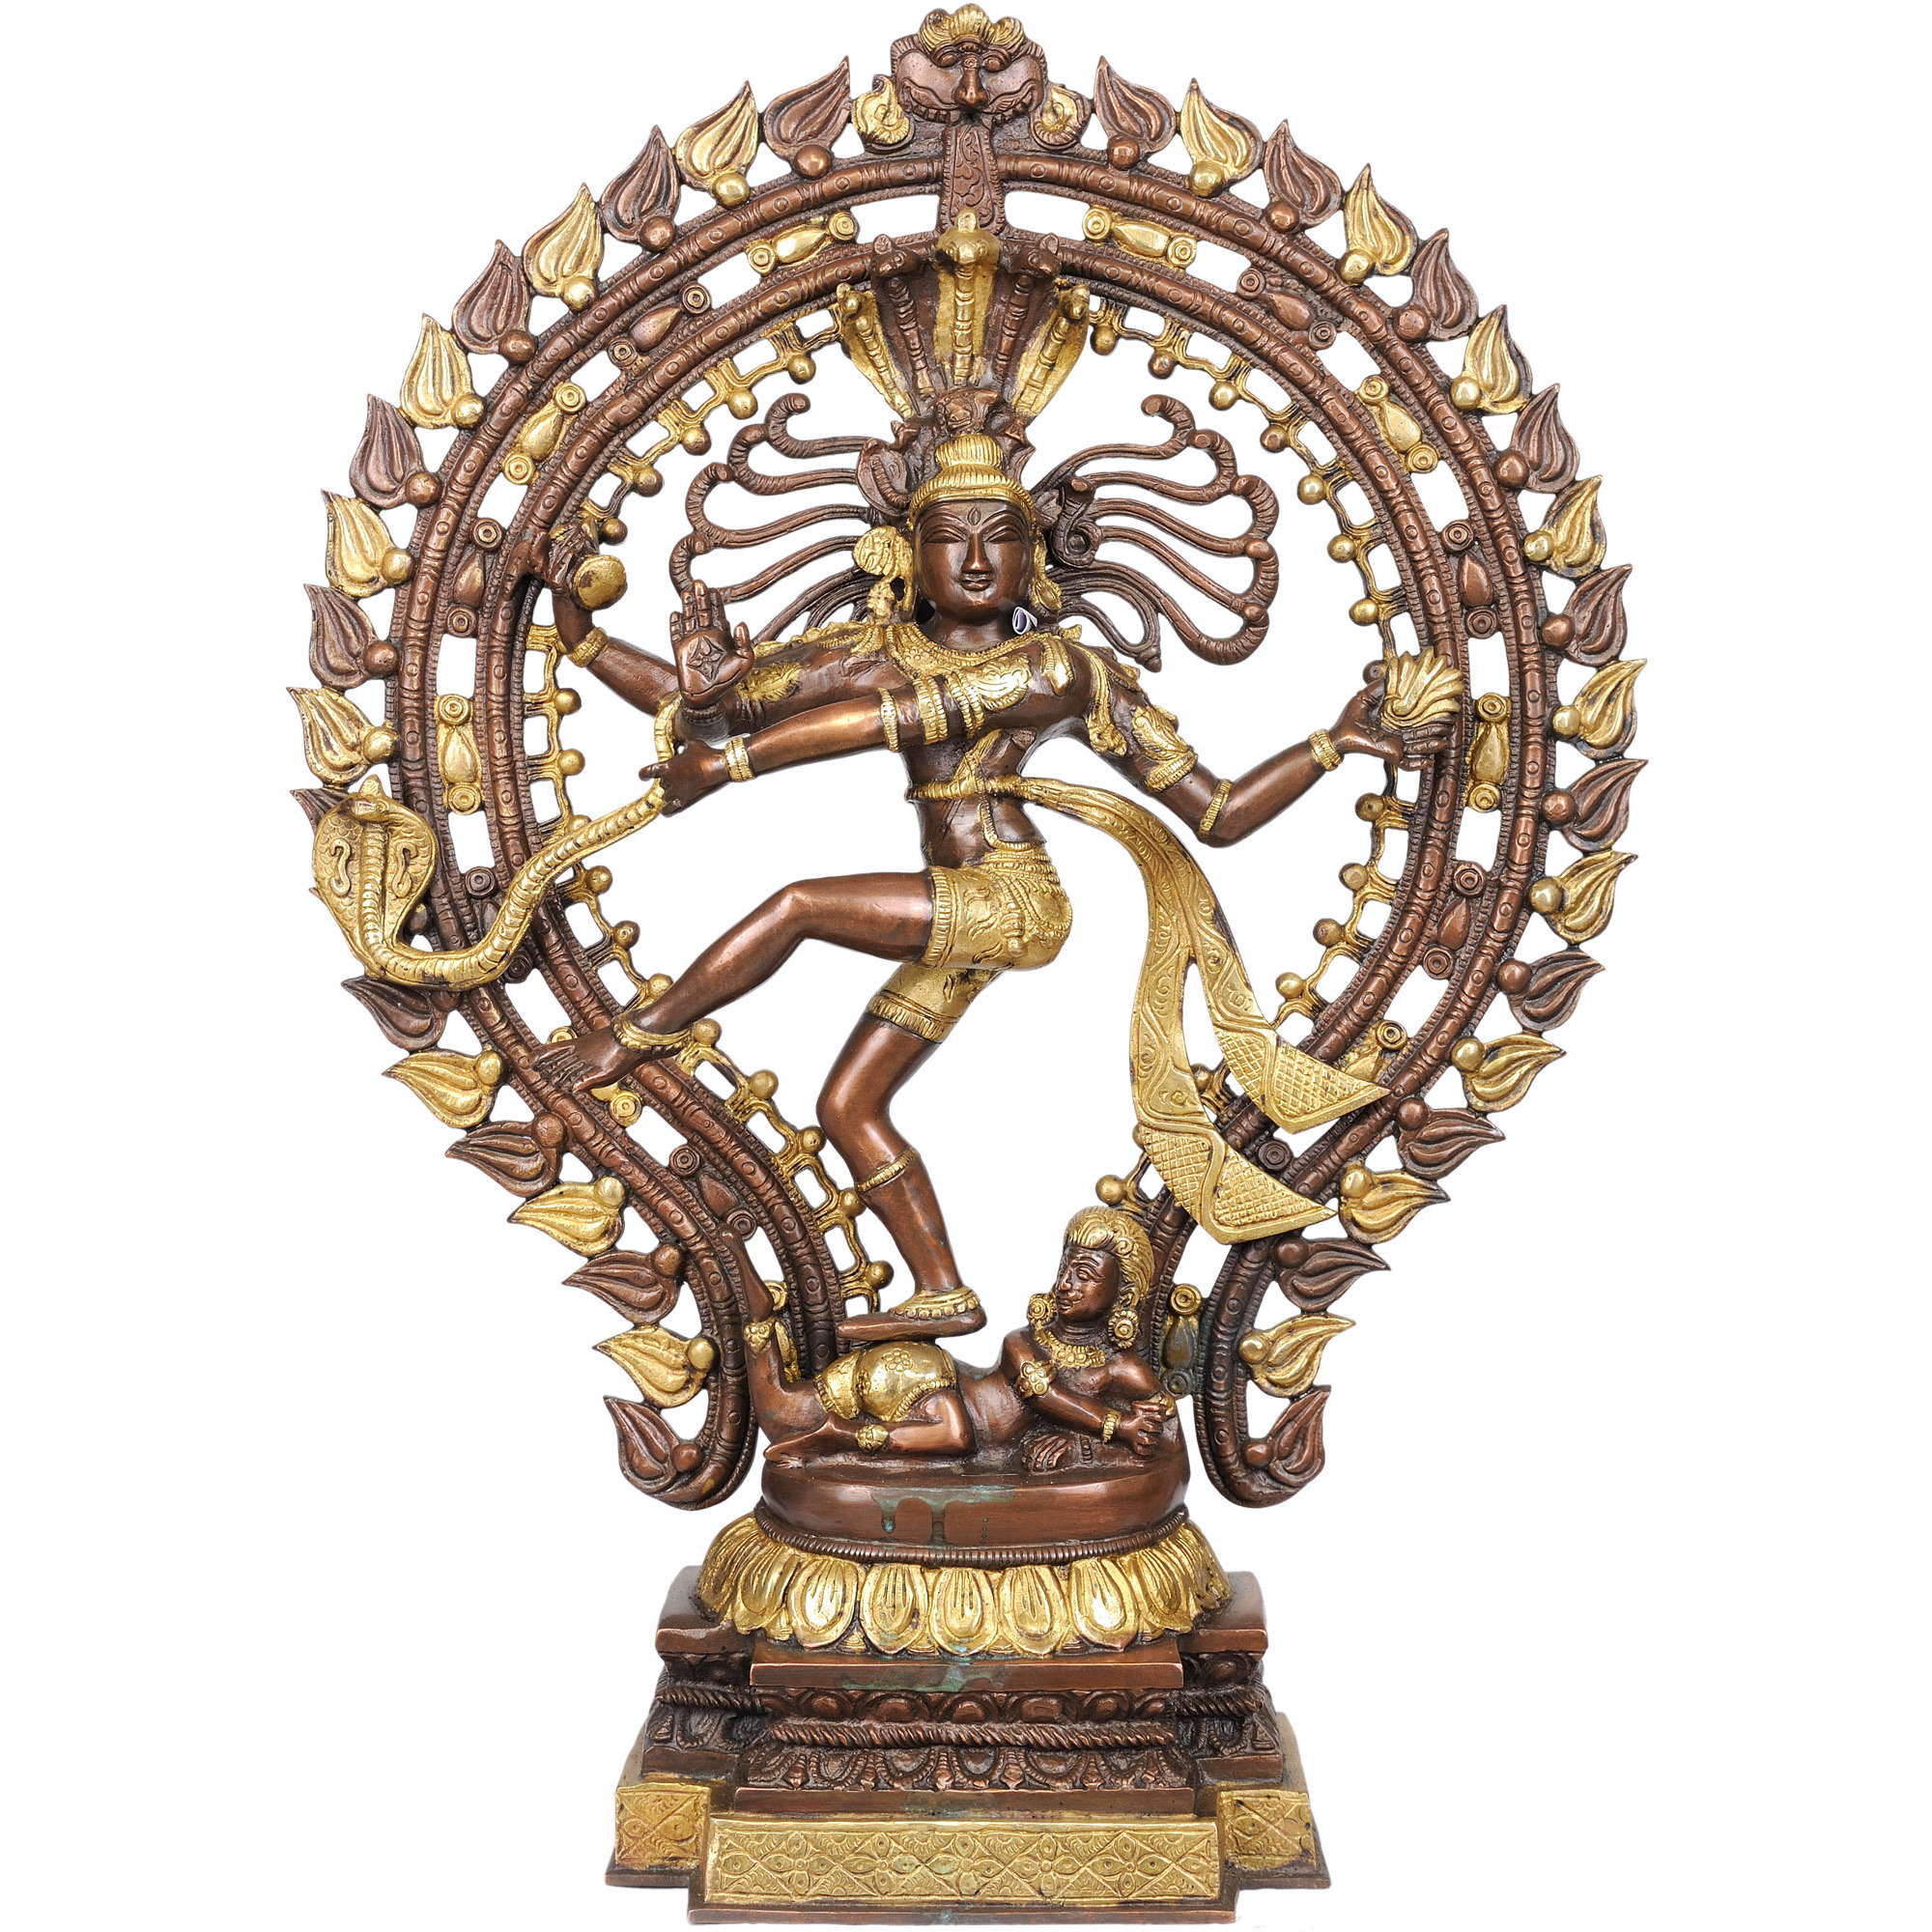 Nataraja in Brown and Golden Hues